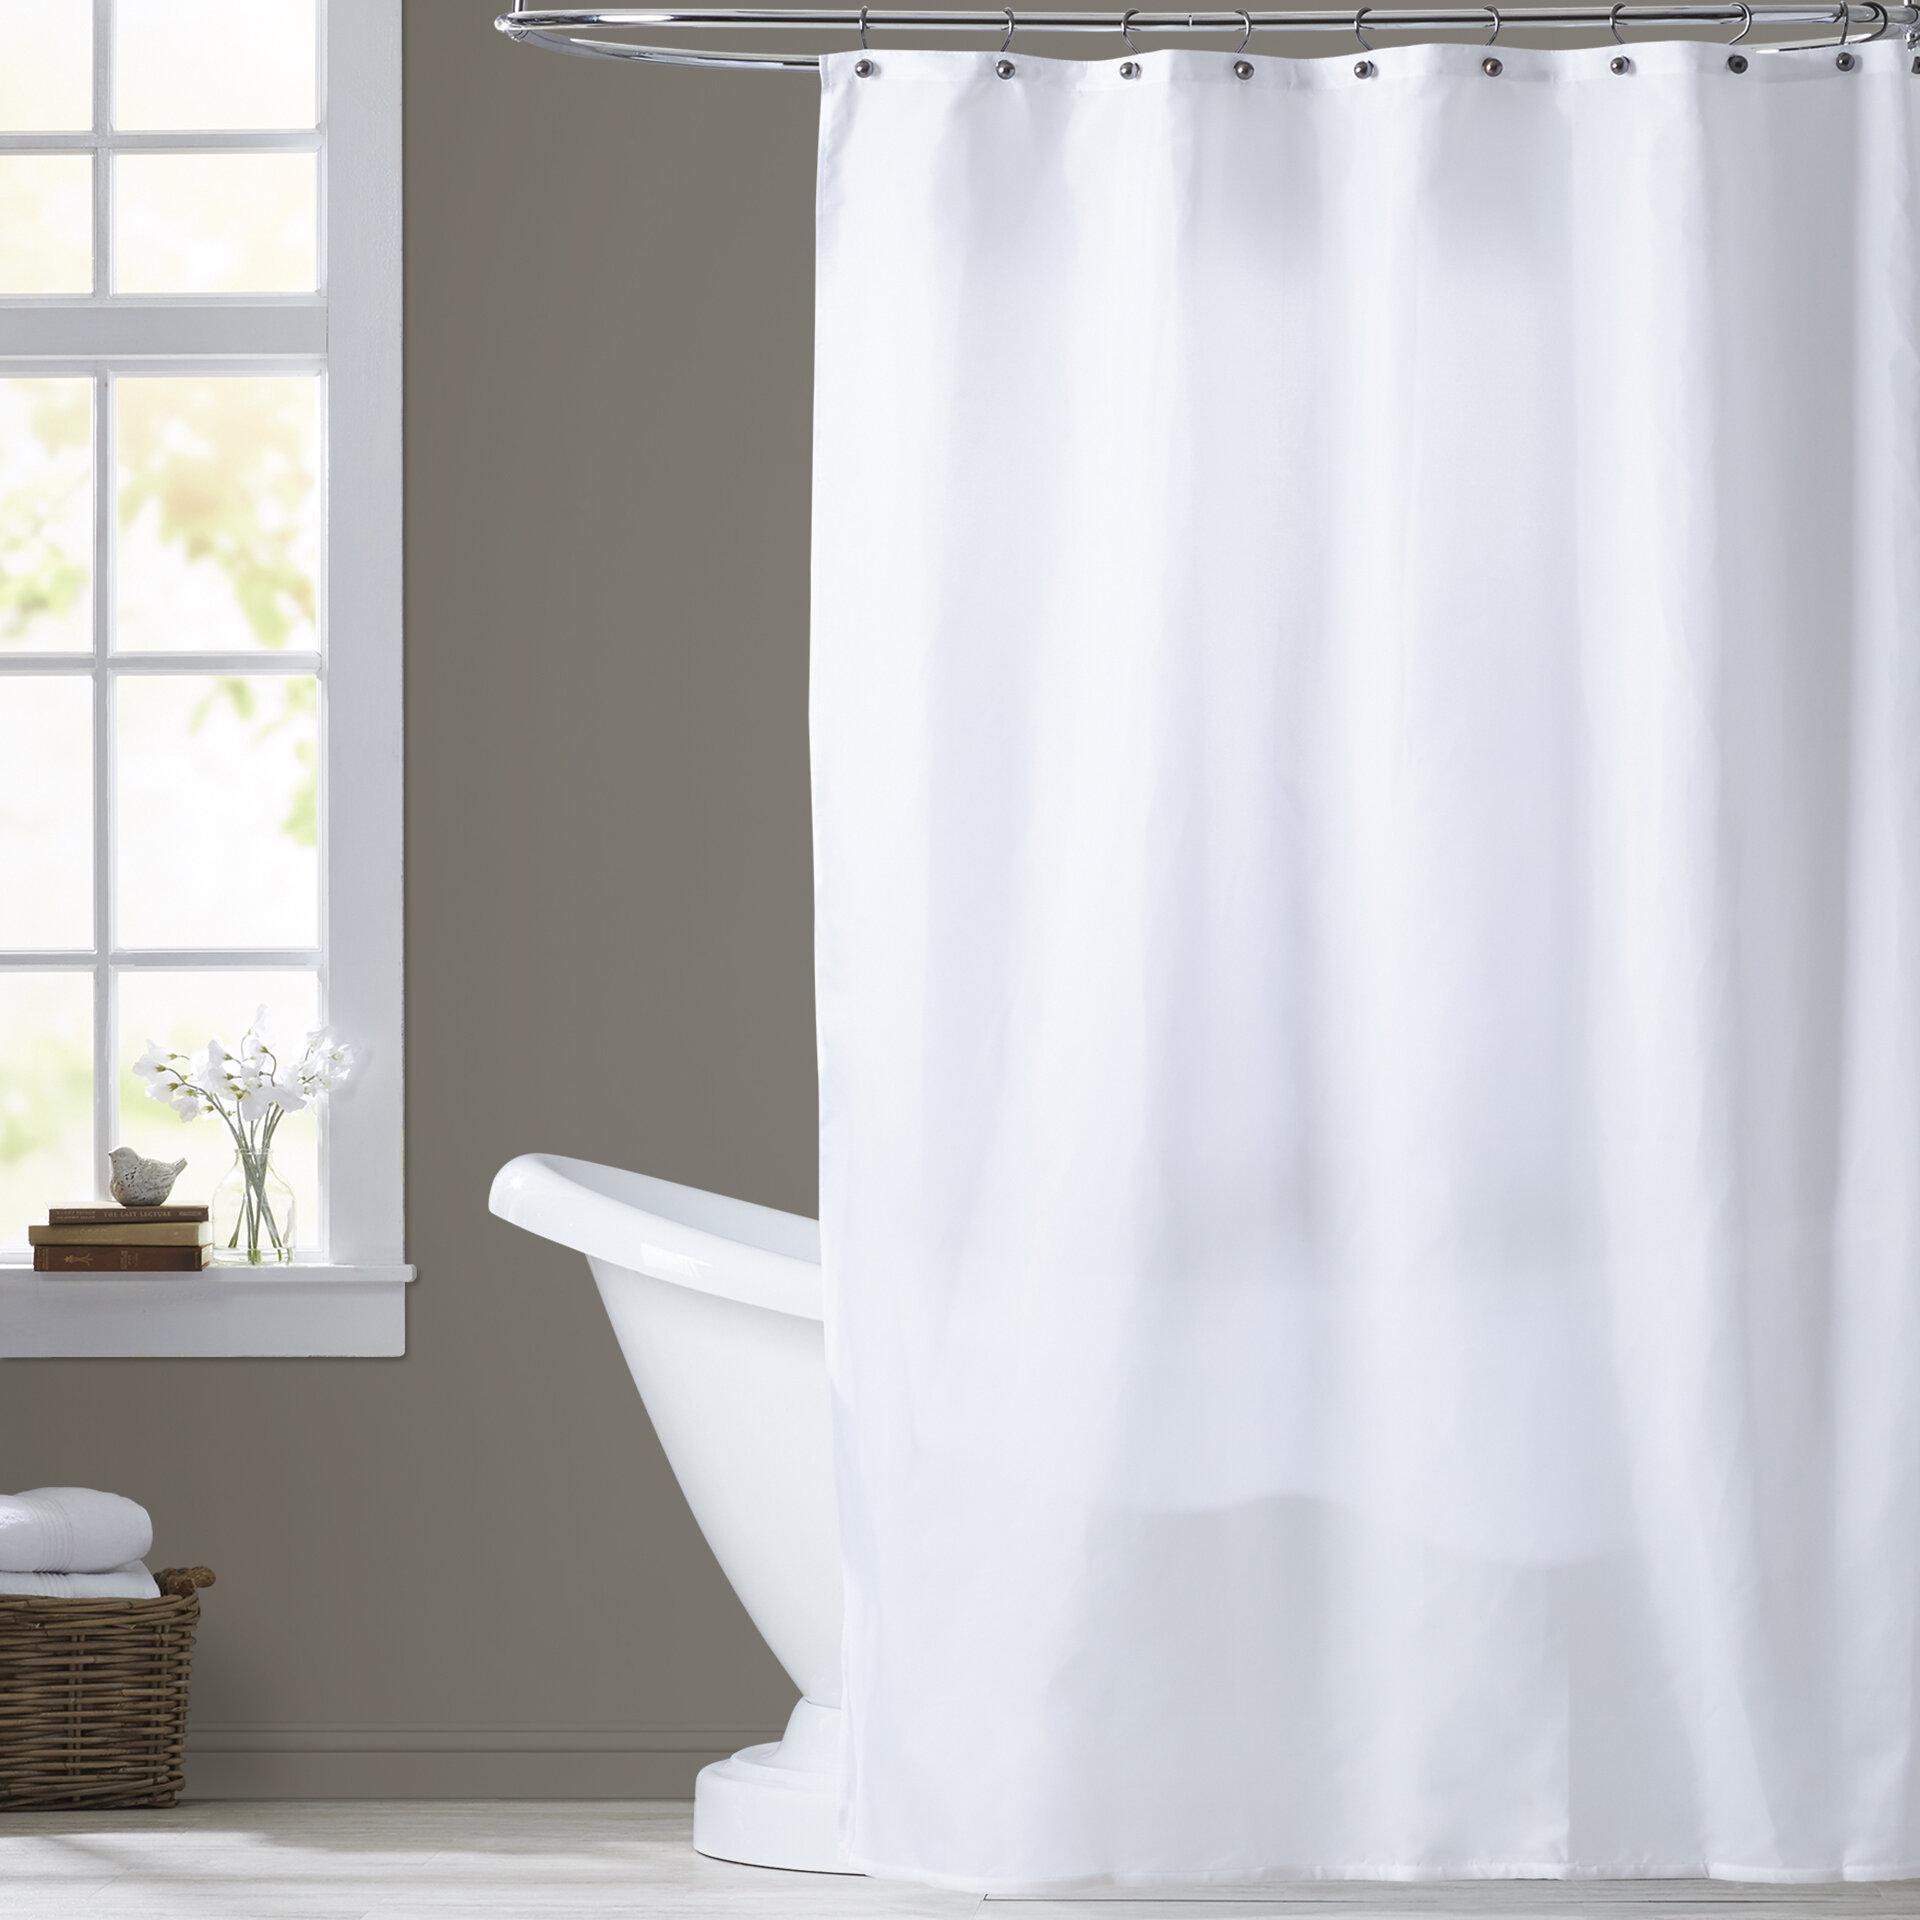 water curtain of shower no peva home clear mdesign dvl x curtains mildew resistant amazon pack chemical mold smell liner com dp odorless kitchen